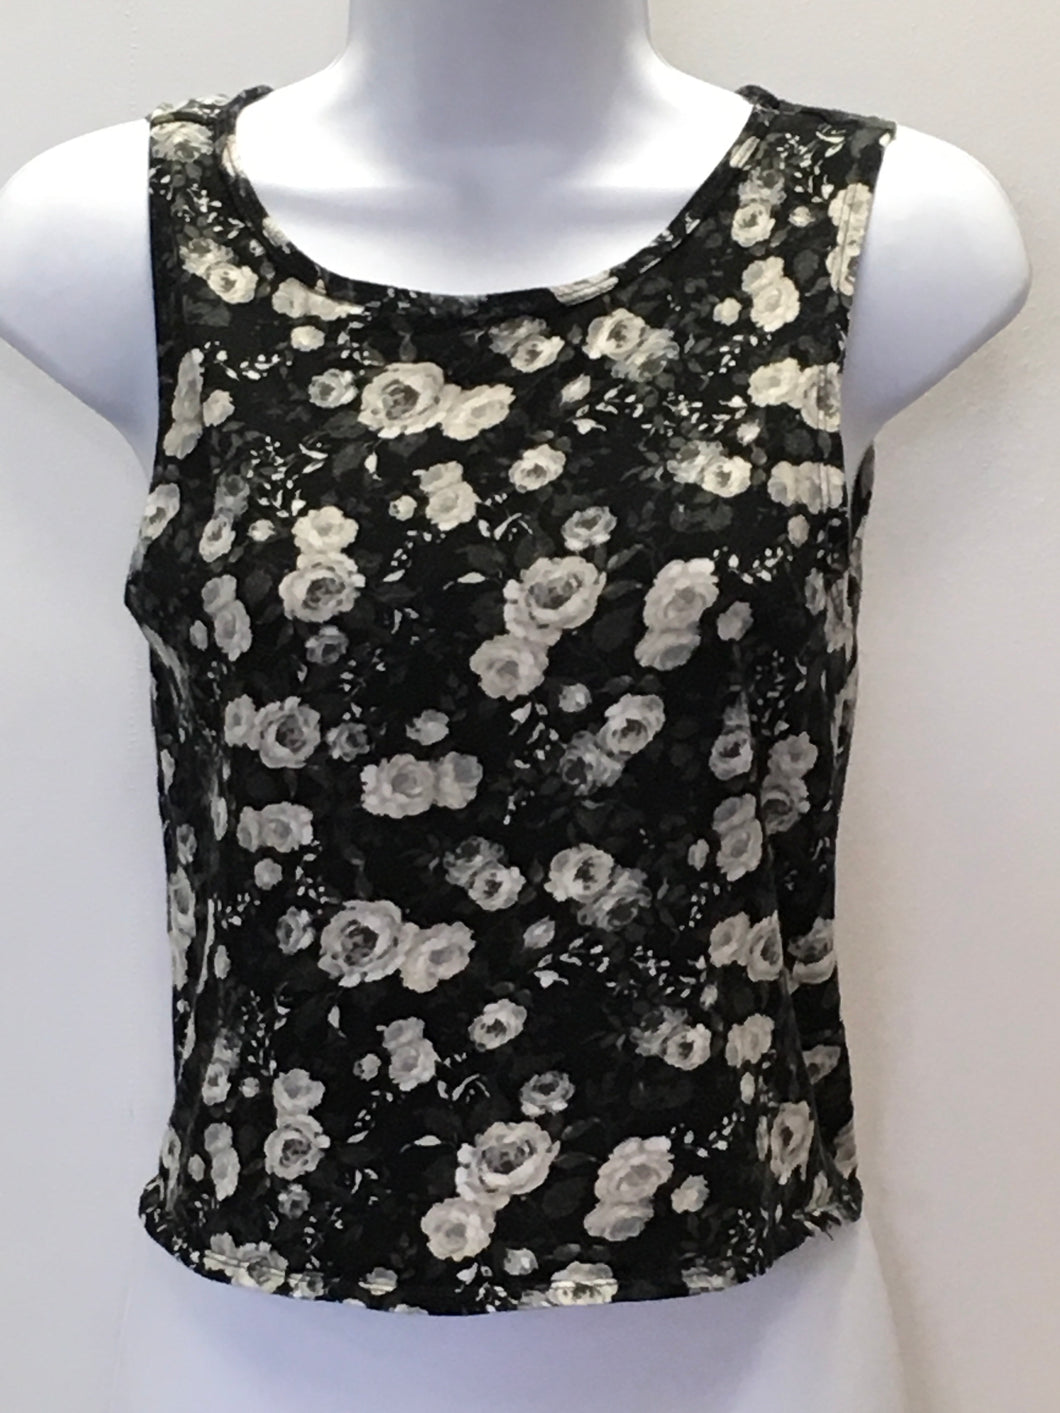 C14-5 Map to Mars Black Floral Tank Top